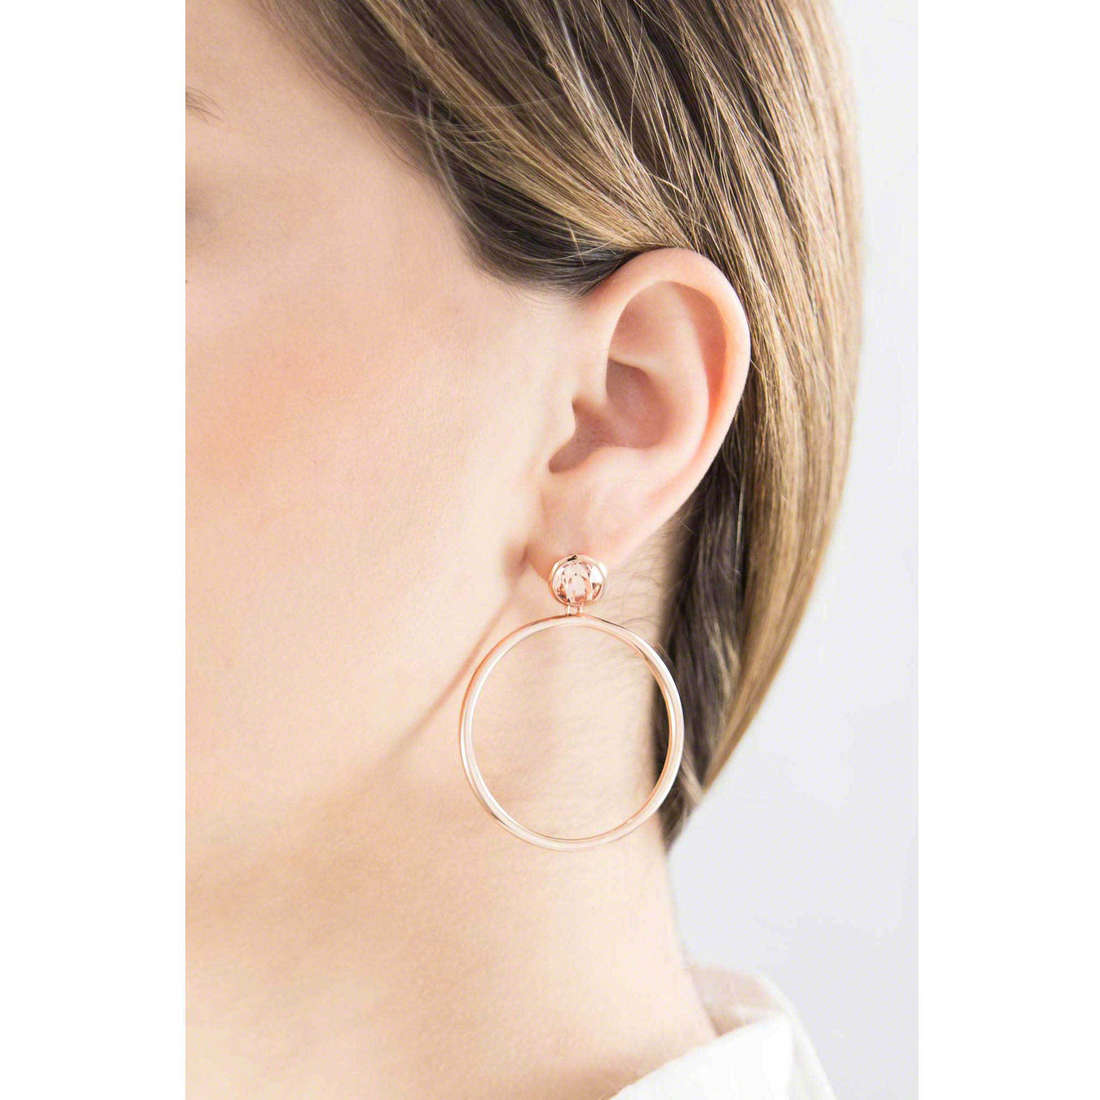 Brosway earrings E-Tring woman BRT31 indosso